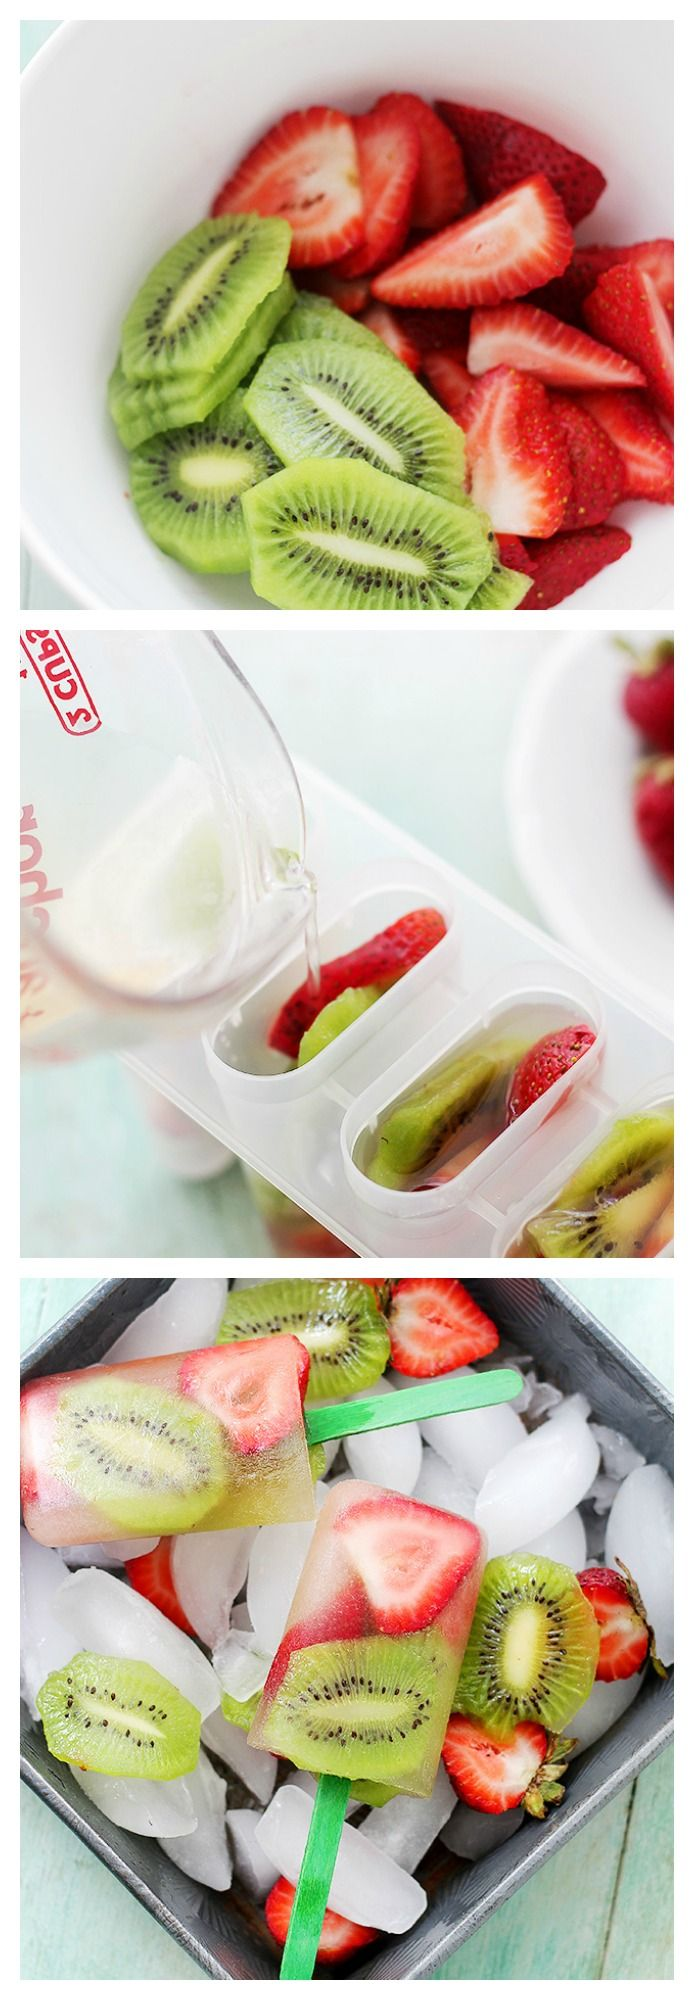 Strawberry Kiwi Popsicles - Super easy, delicious, and healthy!